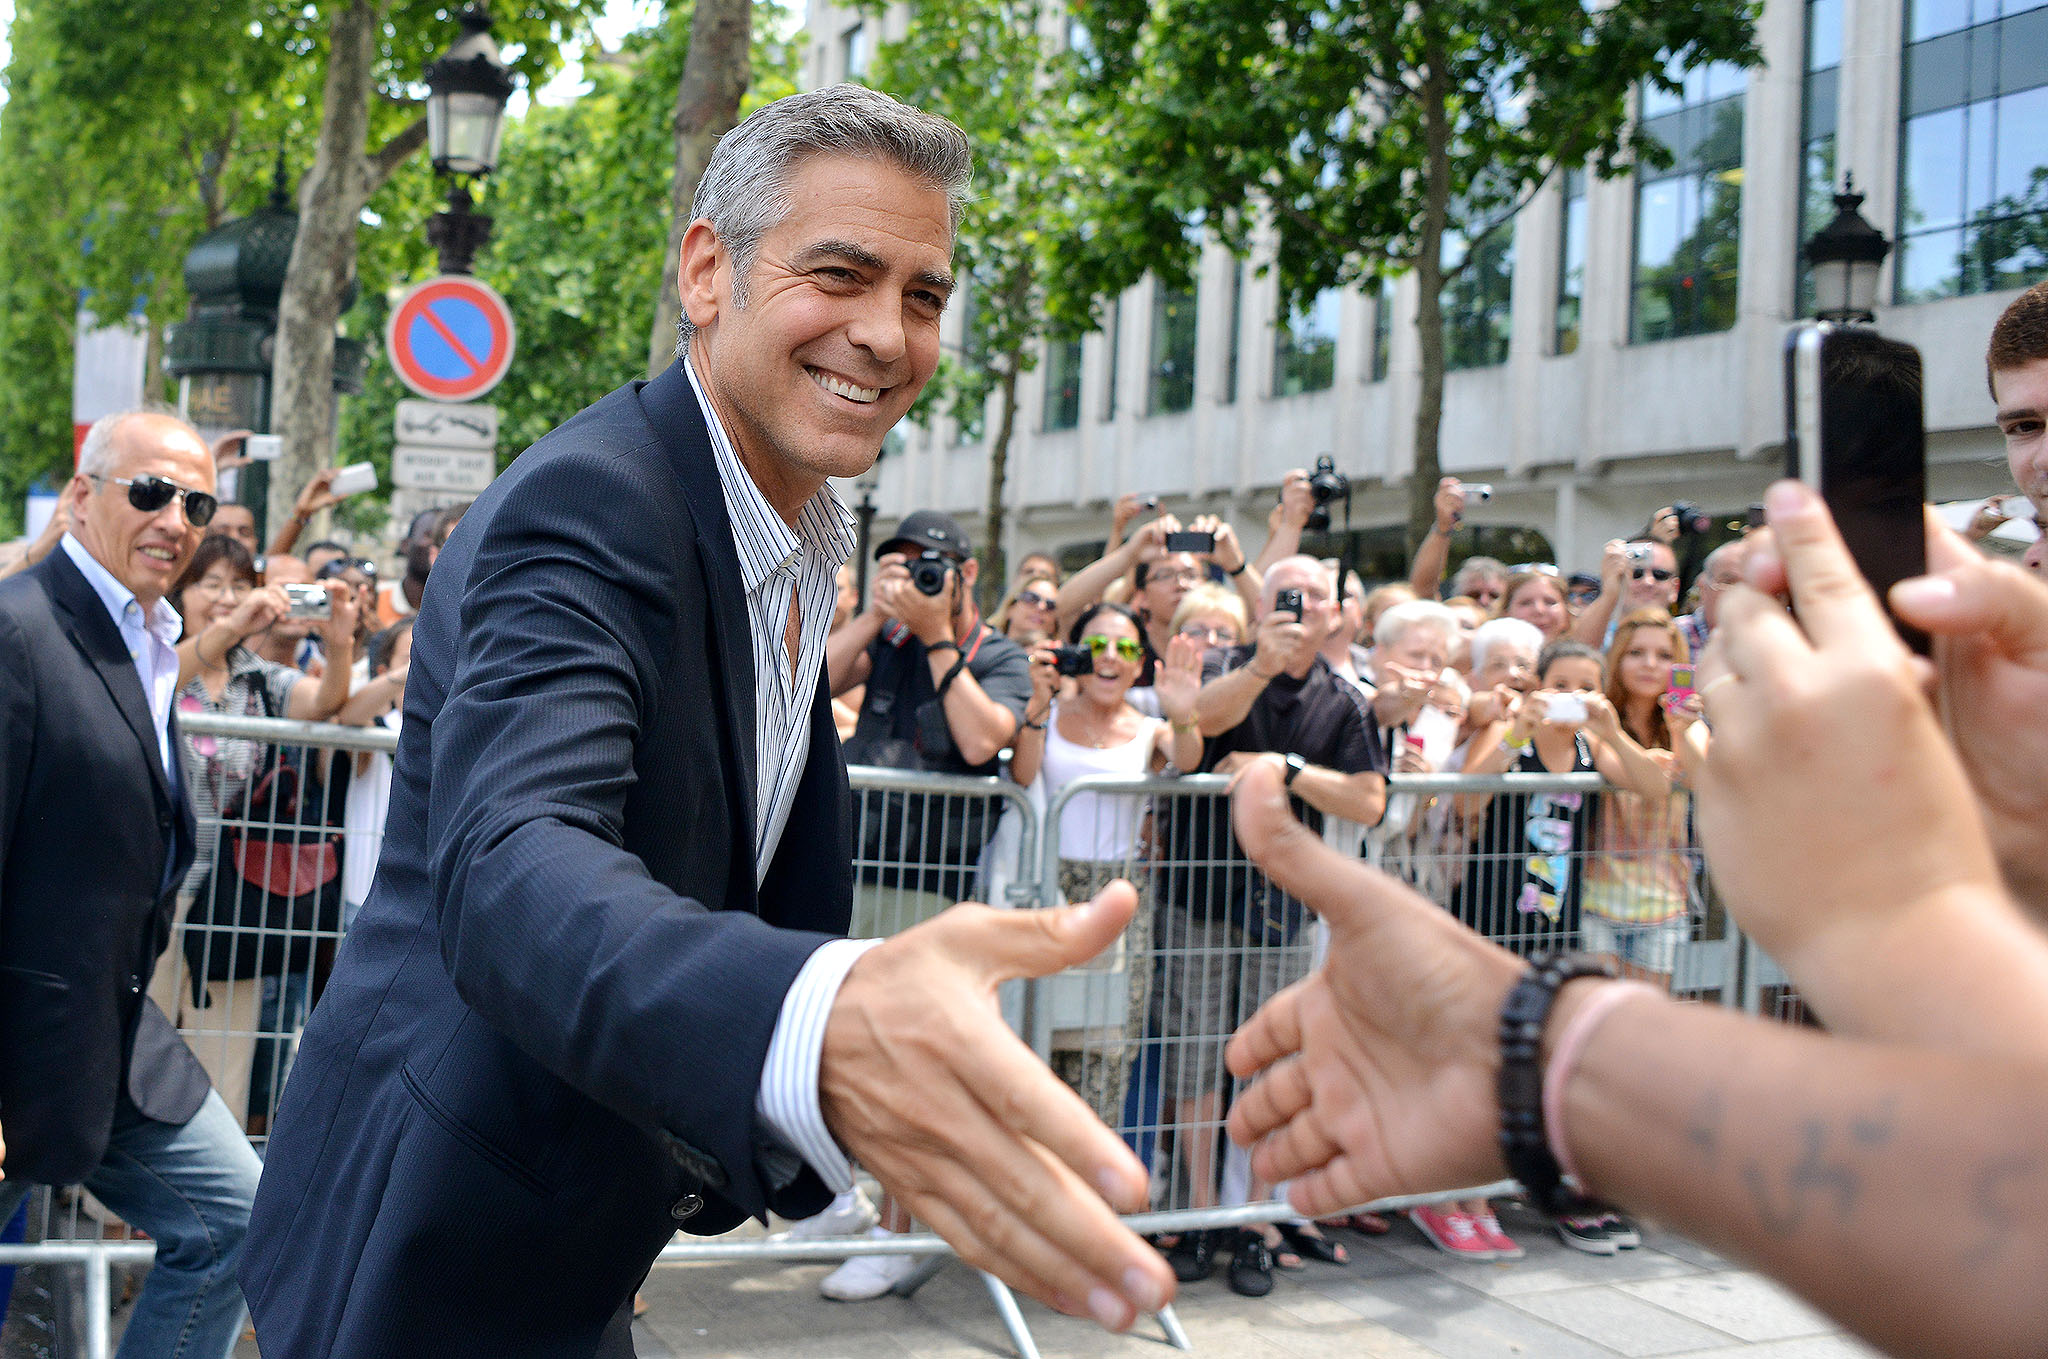 George Clooney heads to Nespresso for a meeting in Paris (Splash News)